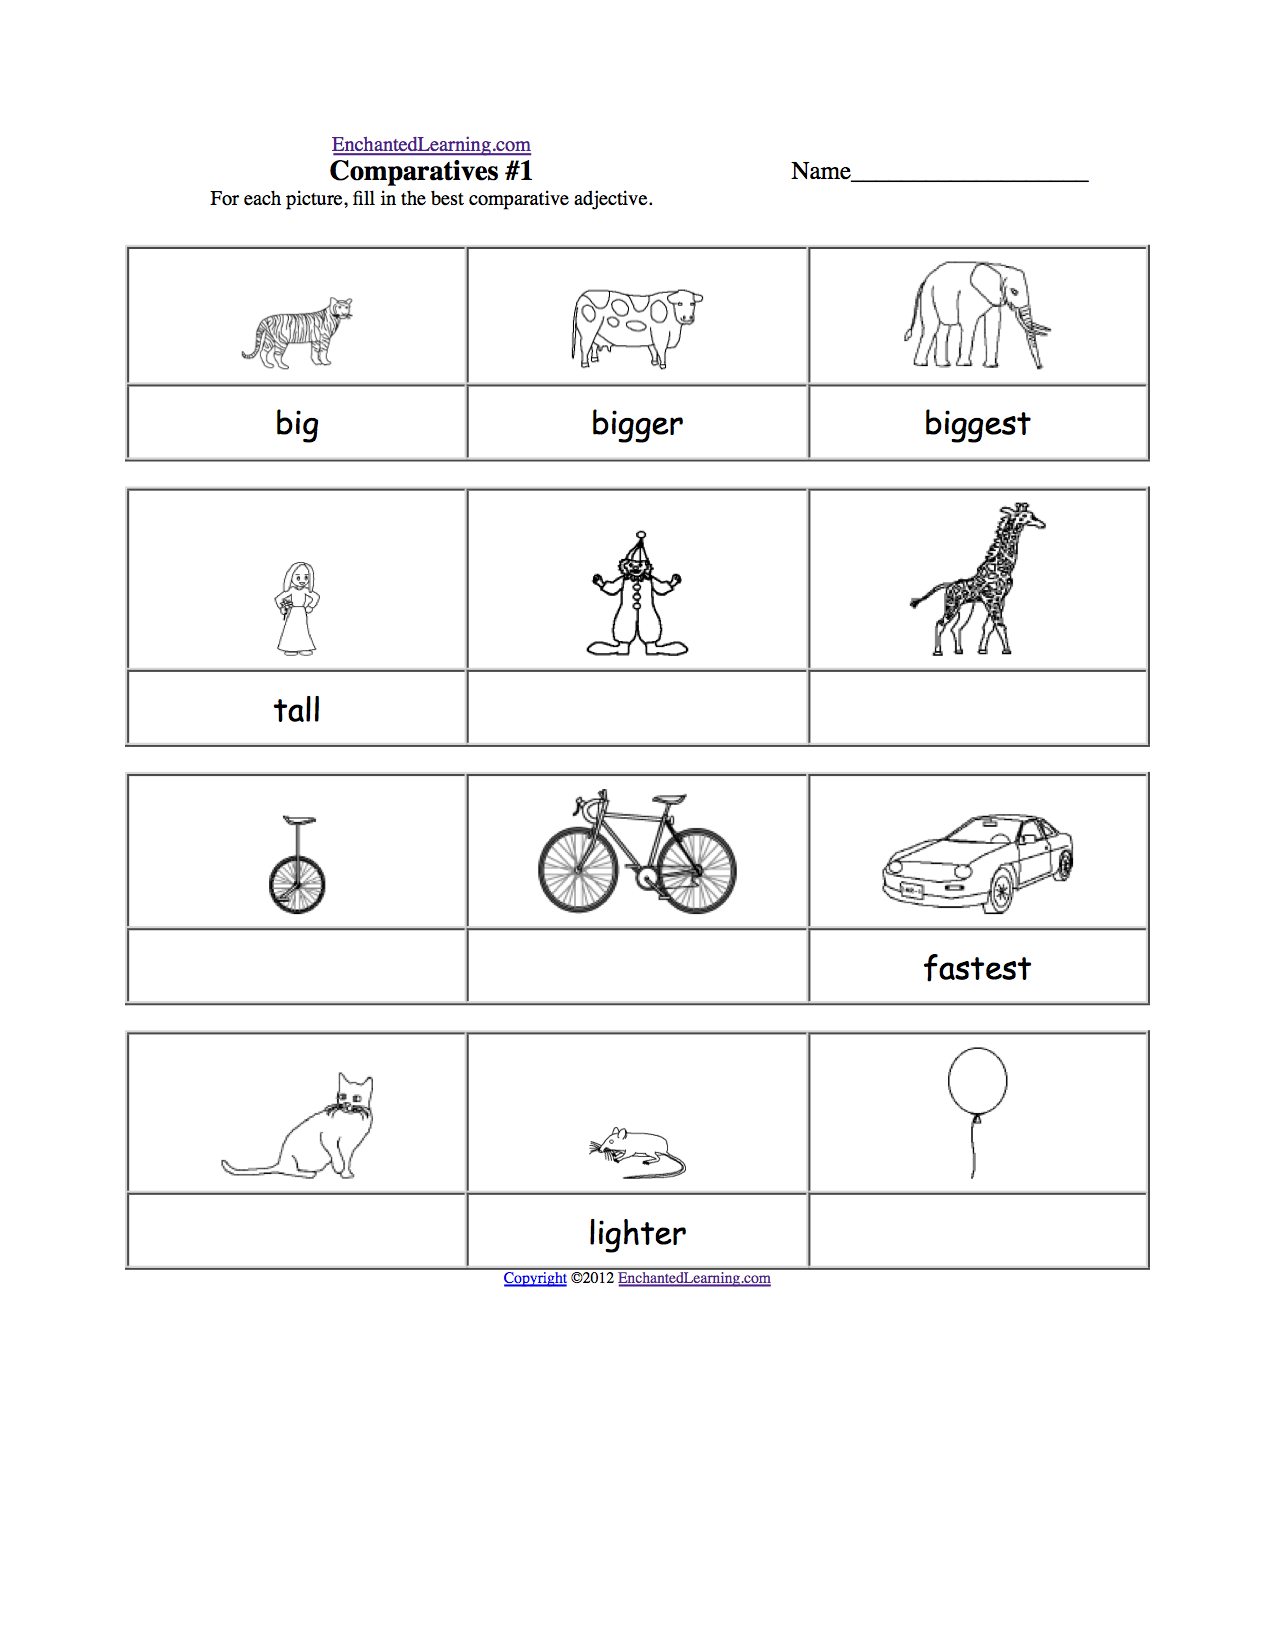 Weirdmailus  Terrific Adjective Activities And Worksheets Enchantedlearningcom With Remarkable Plant Identification Worksheet Besides Spanish One Worksheets Furthermore Name Worksheet Maker With Endearing Traffic Signs Worksheets Also Aa Step Two Worksheet In Addition Printable Fourth Grade Math Worksheets And Grade  Multiplication Worksheets As Well As Spanish Reading Worksheets Additionally Free Printable Subject And Predicate Worksheets From Enchantedlearningcom With Weirdmailus  Remarkable Adjective Activities And Worksheets Enchantedlearningcom With Endearing Plant Identification Worksheet Besides Spanish One Worksheets Furthermore Name Worksheet Maker And Terrific Traffic Signs Worksheets Also Aa Step Two Worksheet In Addition Printable Fourth Grade Math Worksheets From Enchantedlearningcom